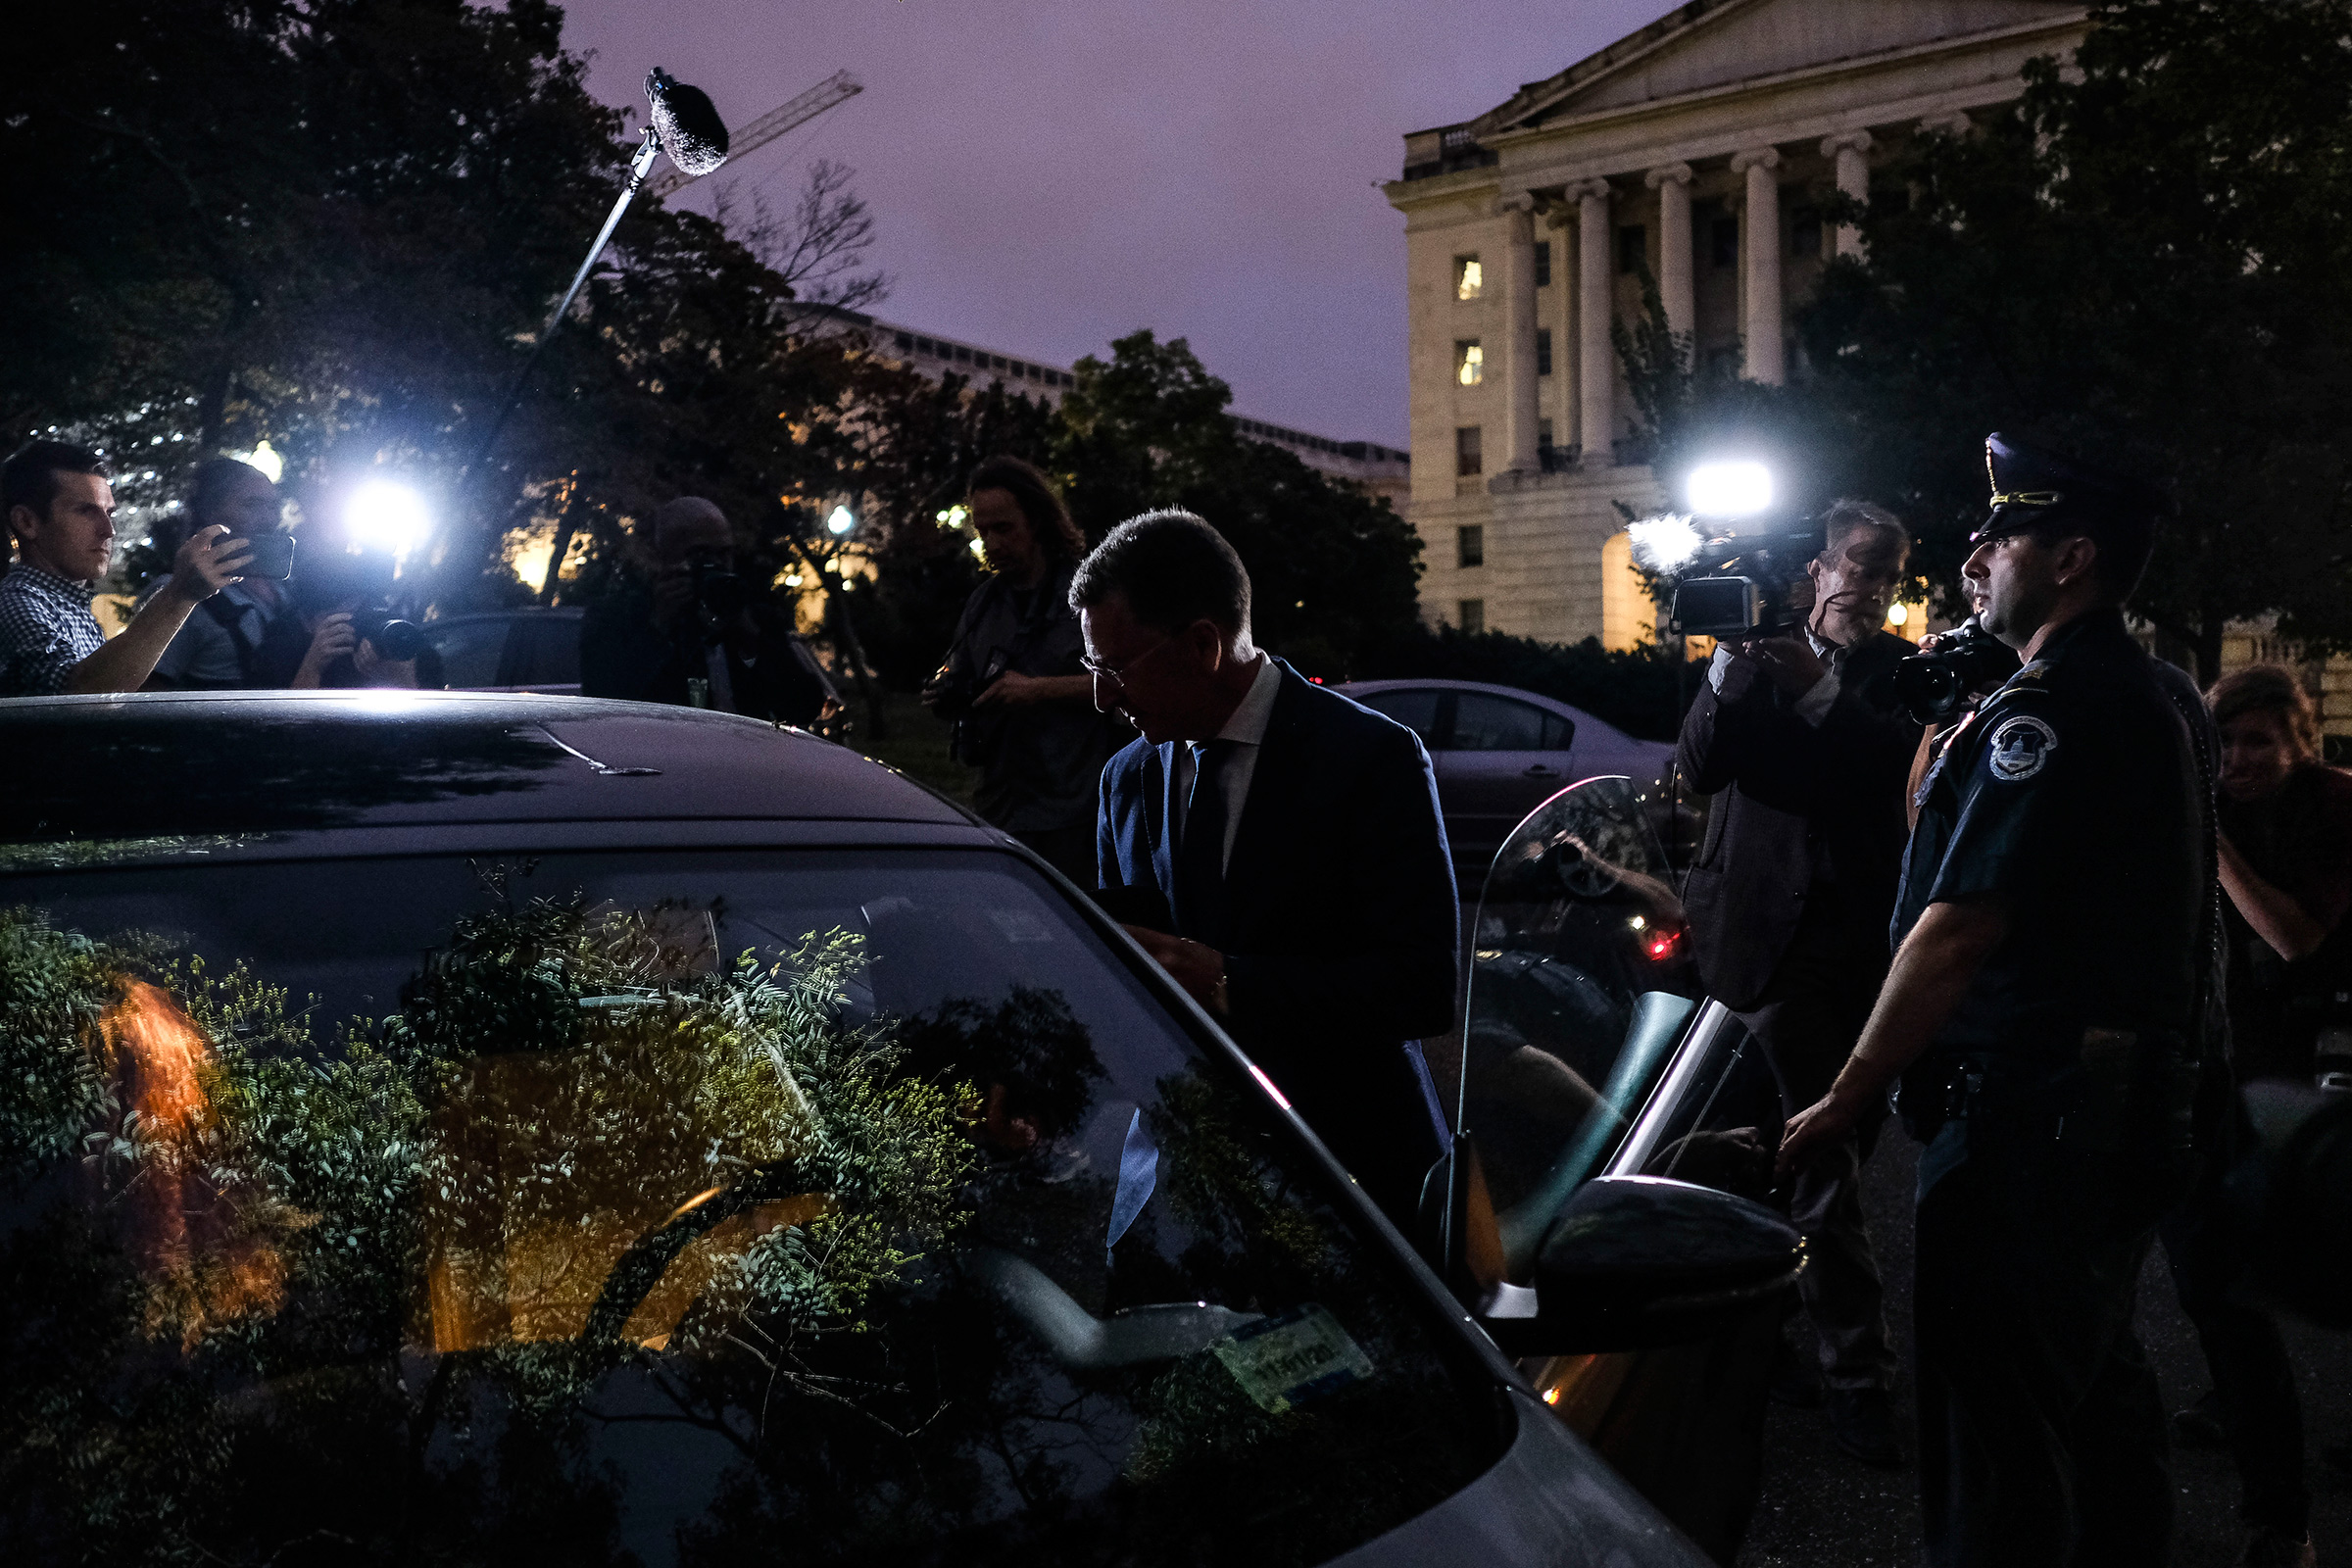 Kurt Volker, former U.S. envoy to Ukraine, leaves the Capitol after delivering hours of testimony to the House intelligence committees in Washington, D.C., on Oct. 3, 2019.